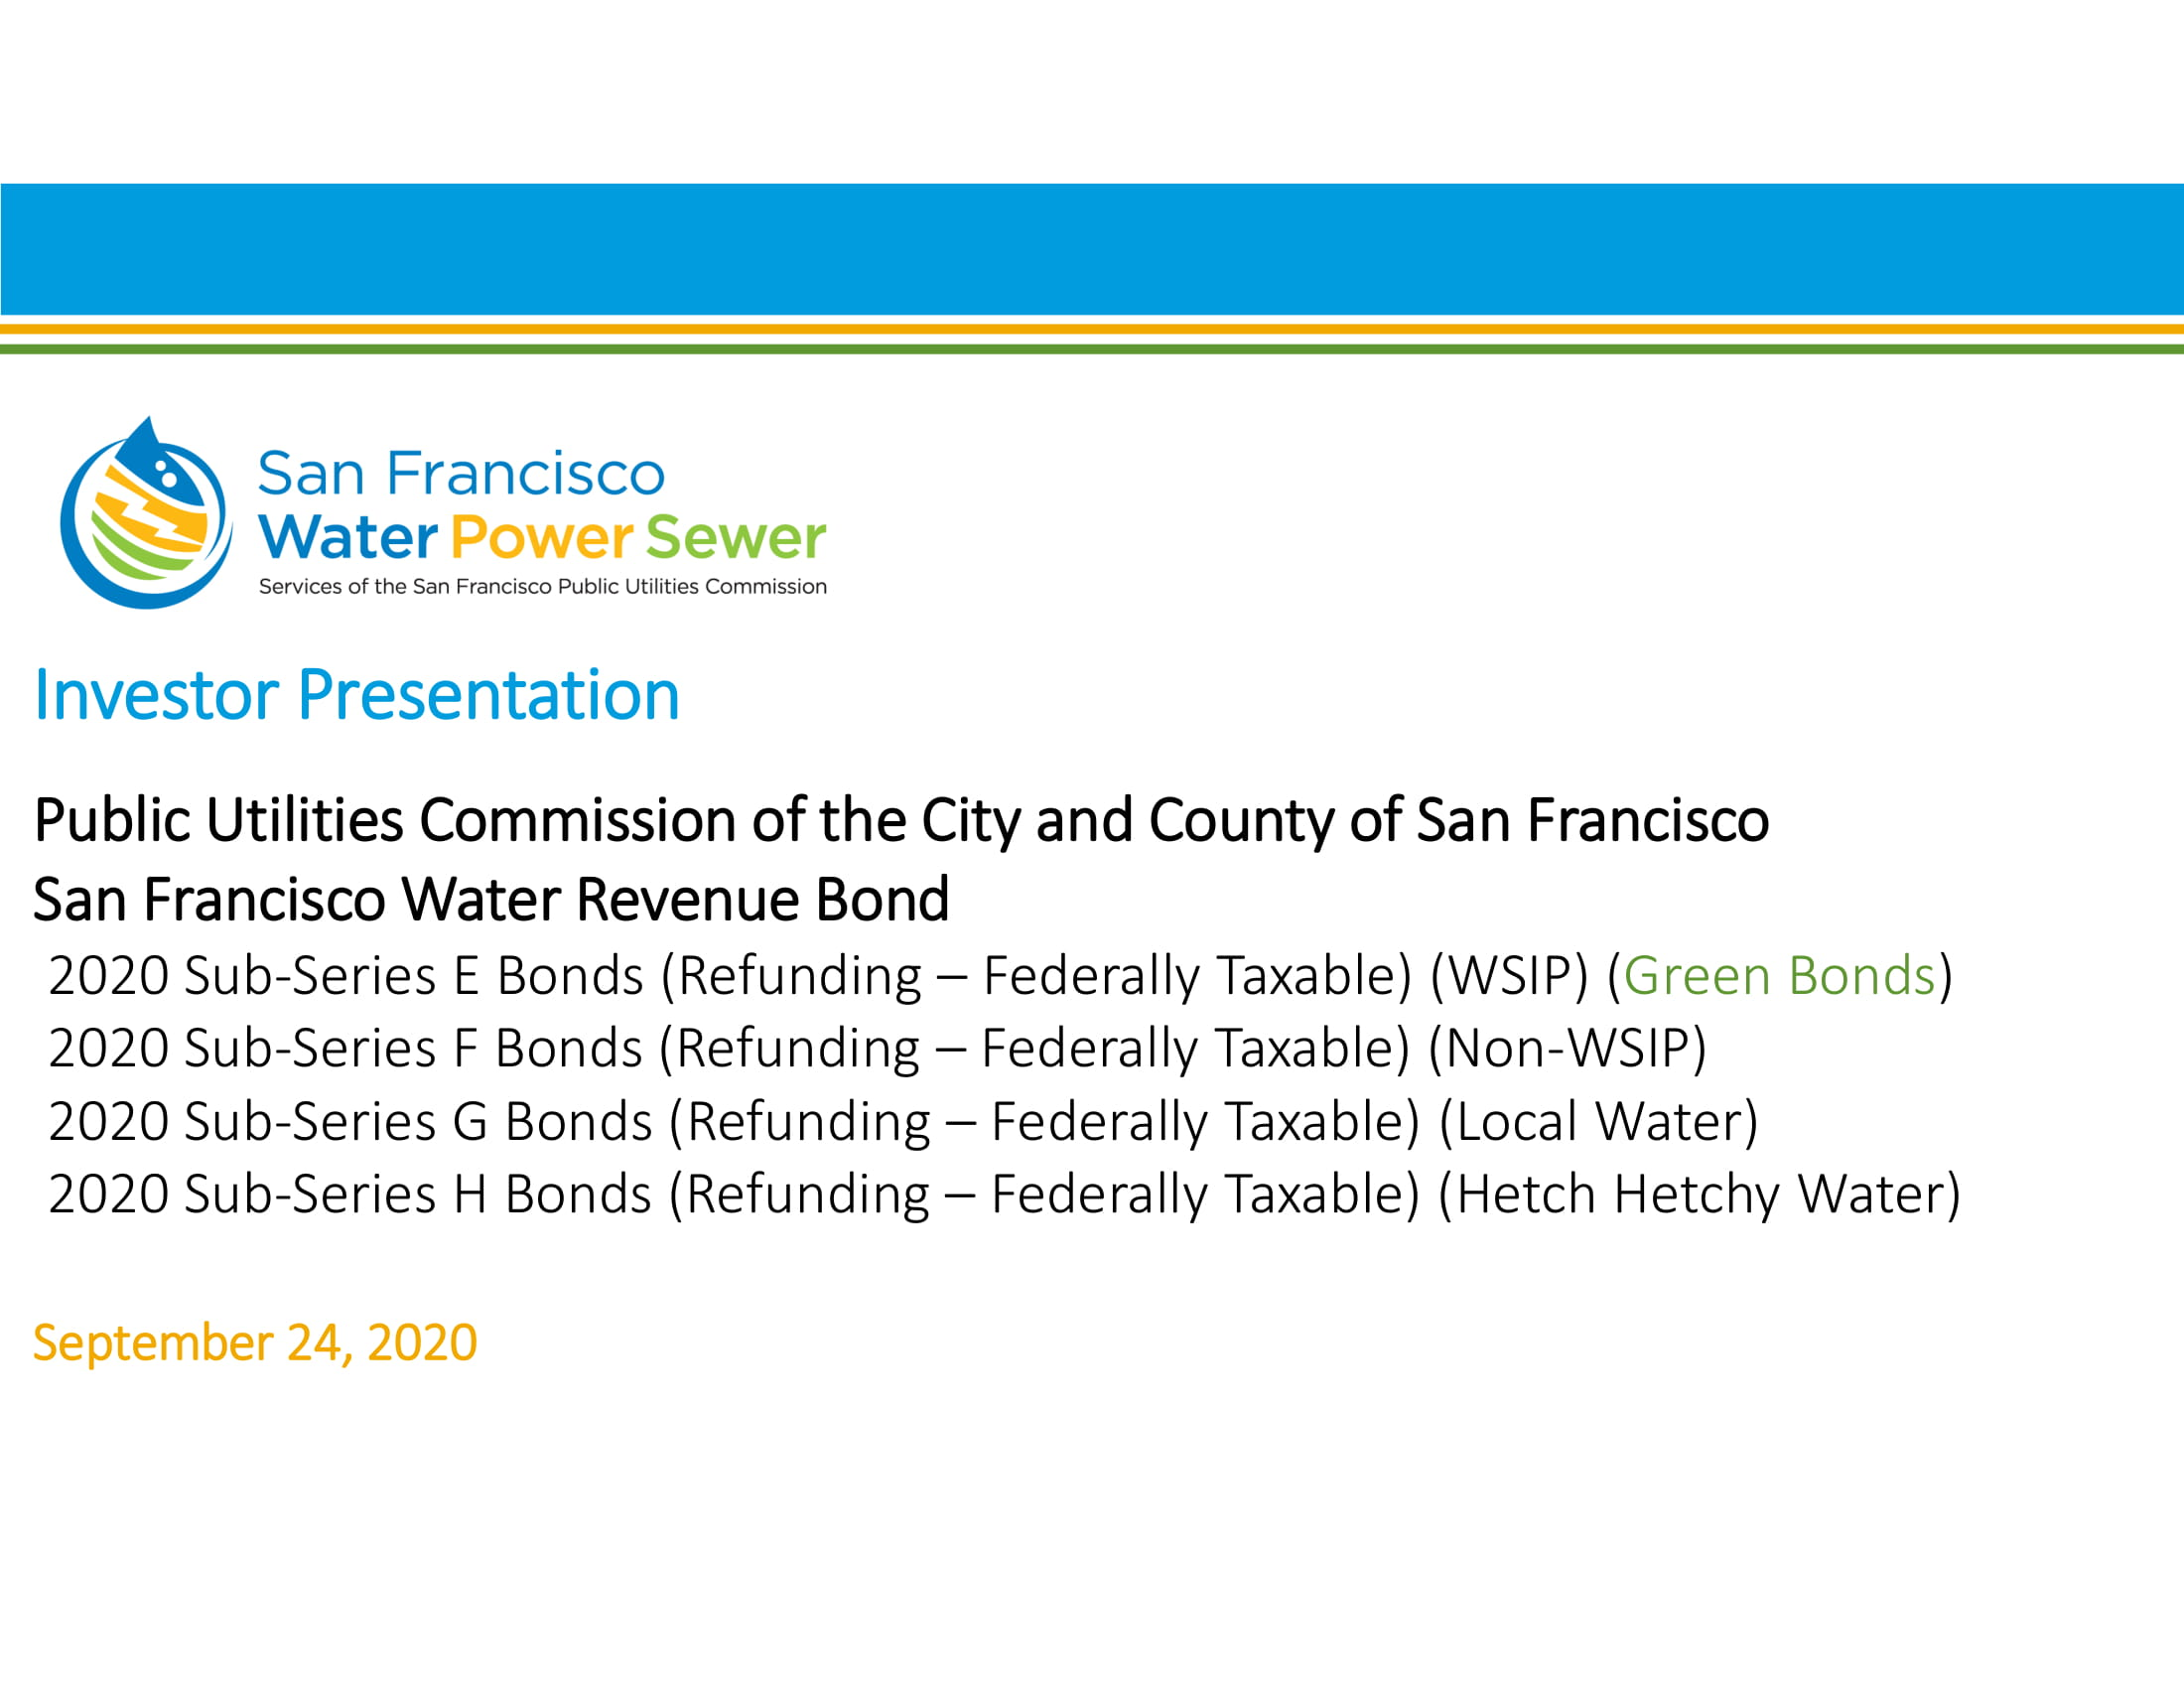 San Francisco Public Utilities Commission Investor Presentation